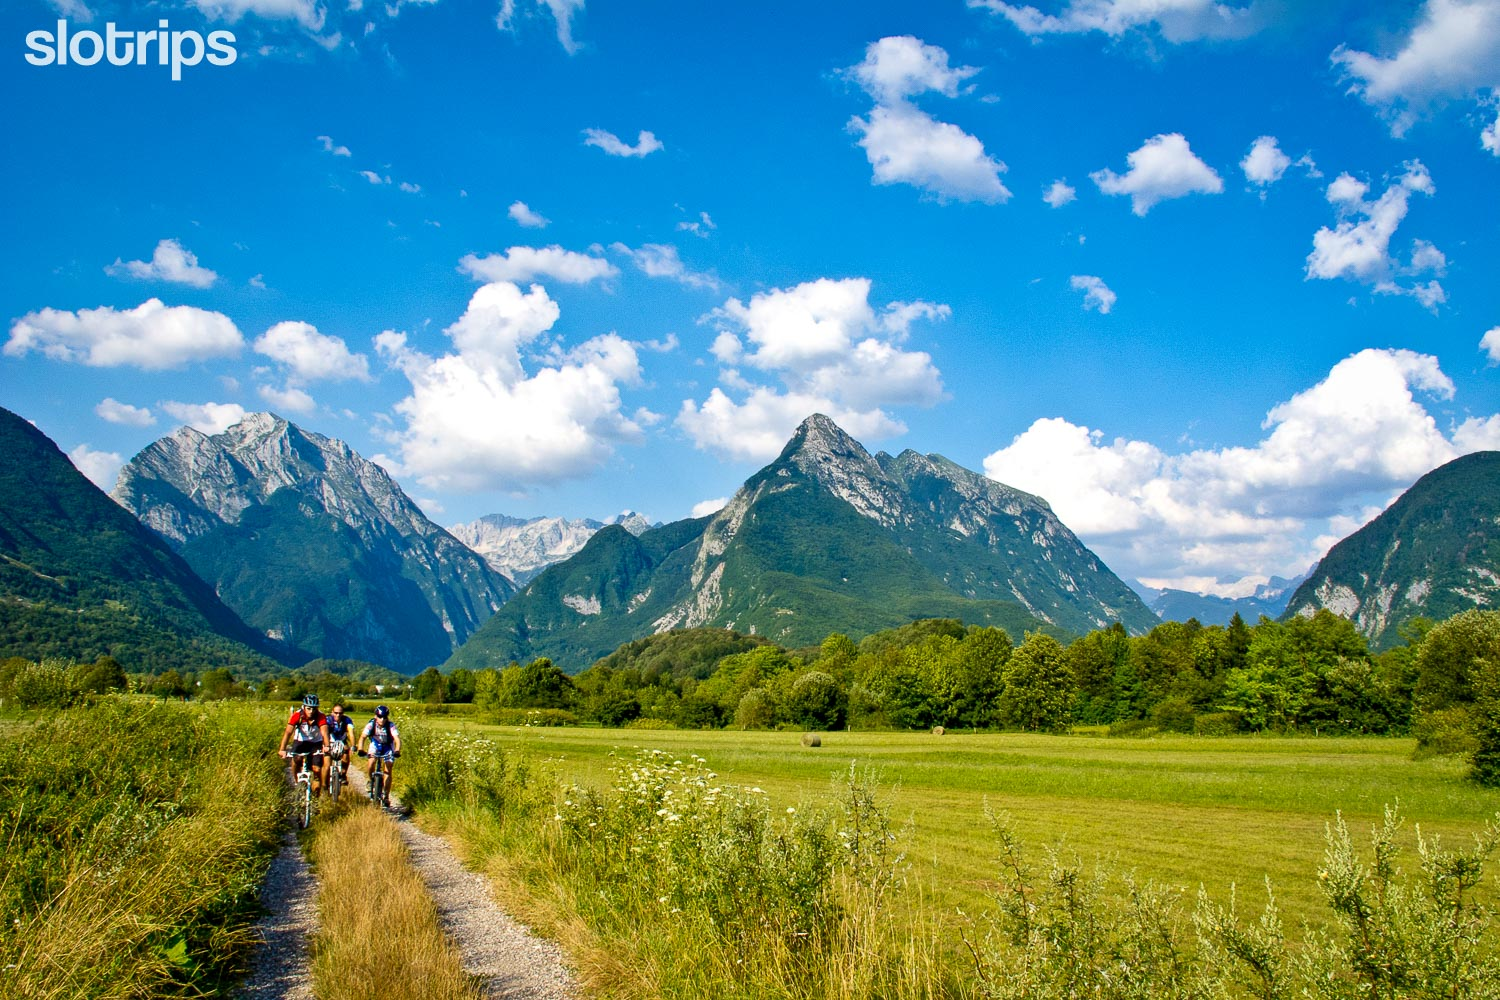 Biking in the Soca valley near Bovec, Slovenia